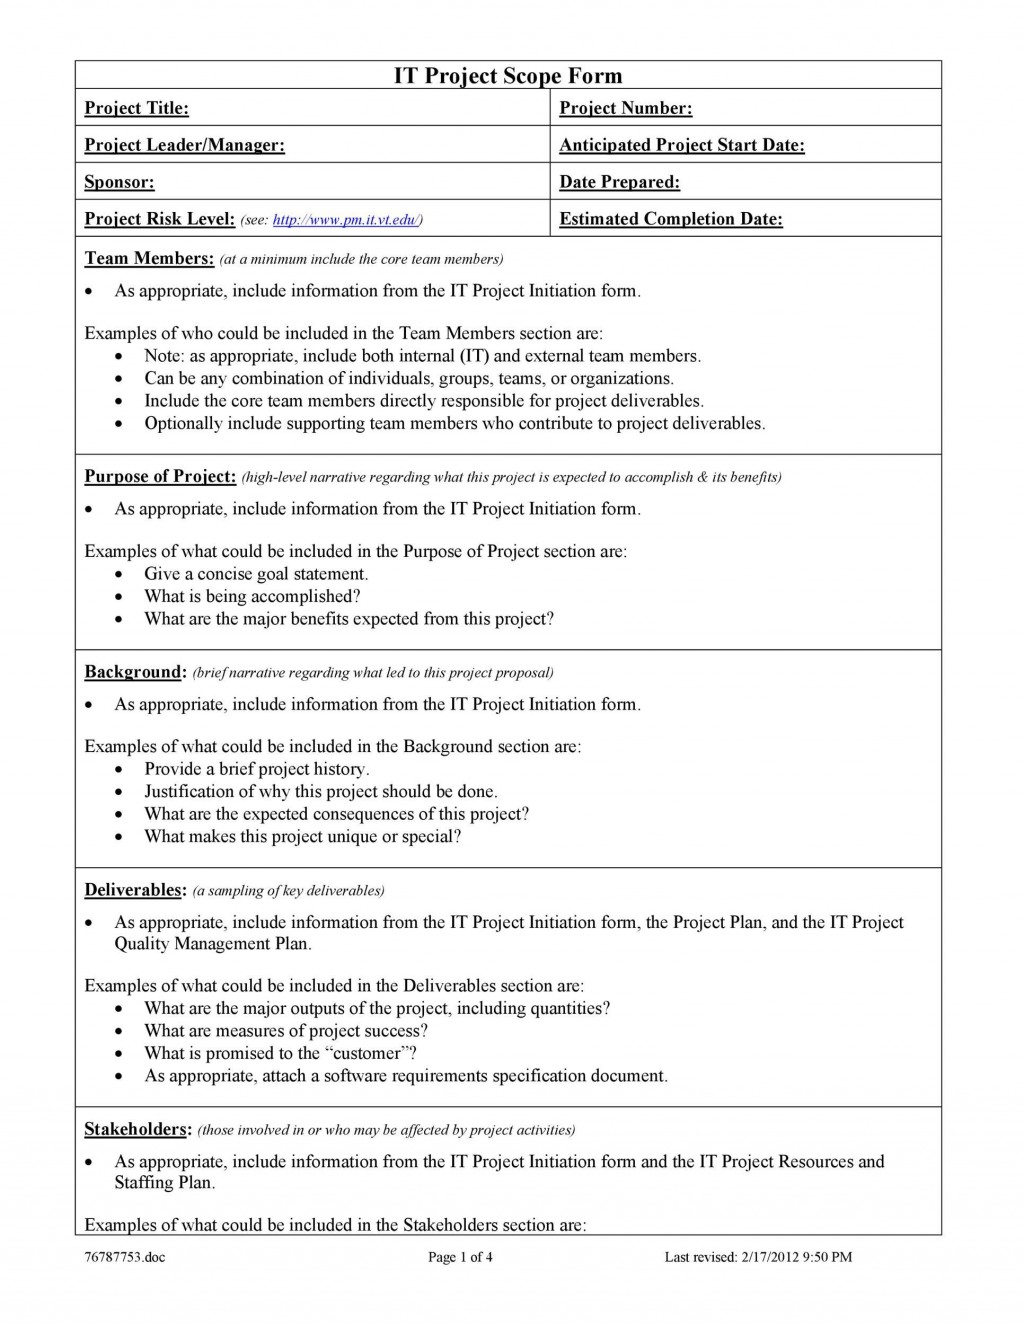 006 Shocking Project Scope Management Plan Template Free High Definition Large